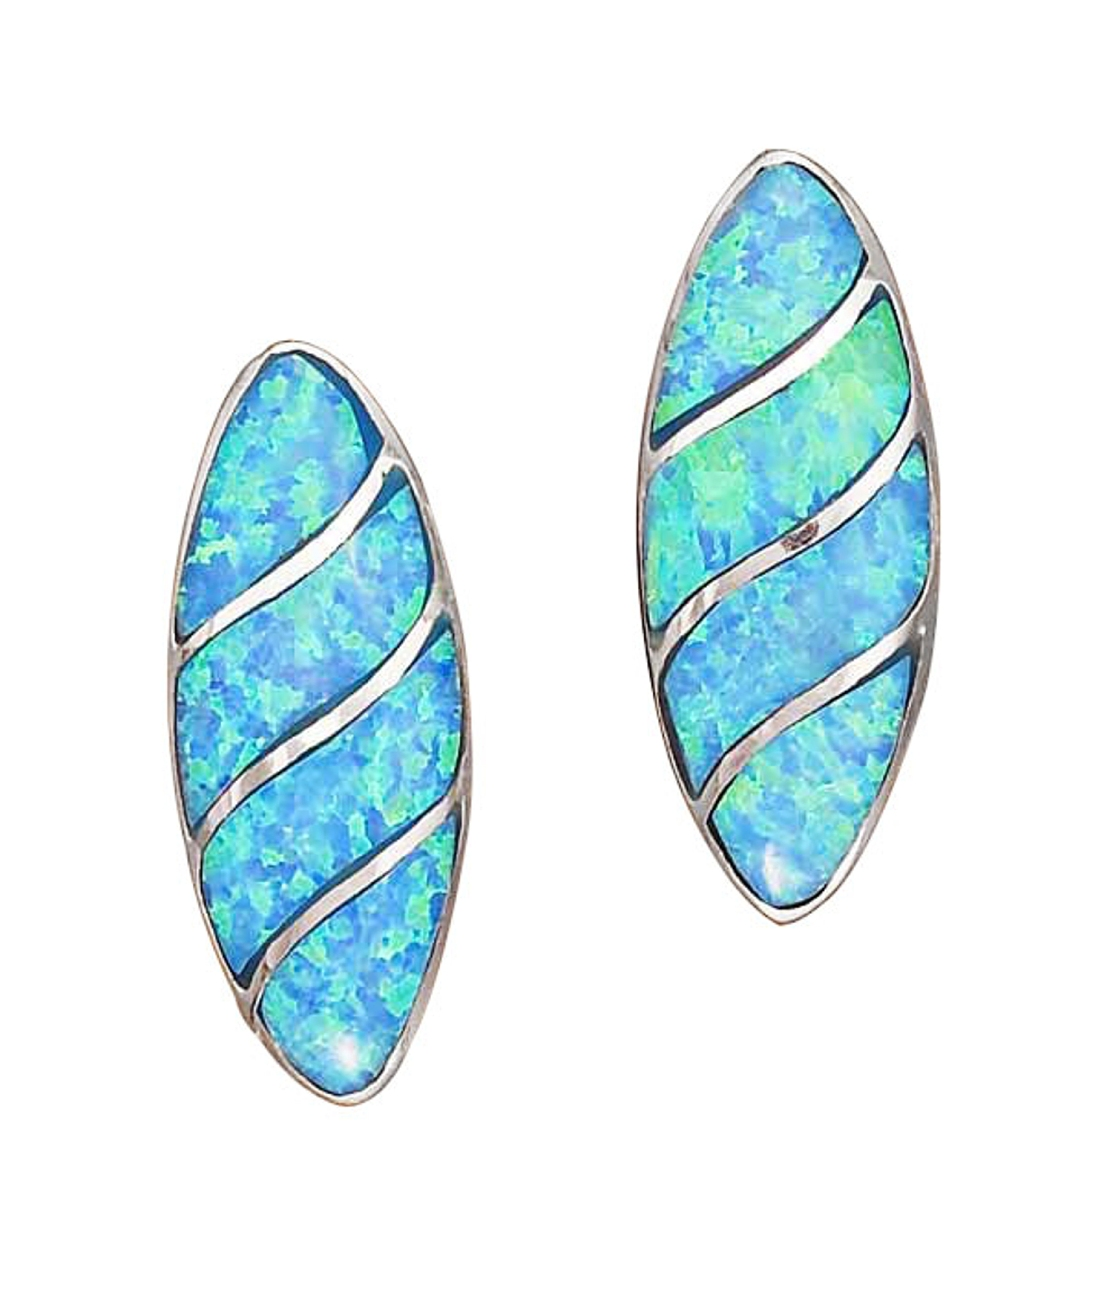 Imitation Blue Opal Oval Inlay Post Earrings